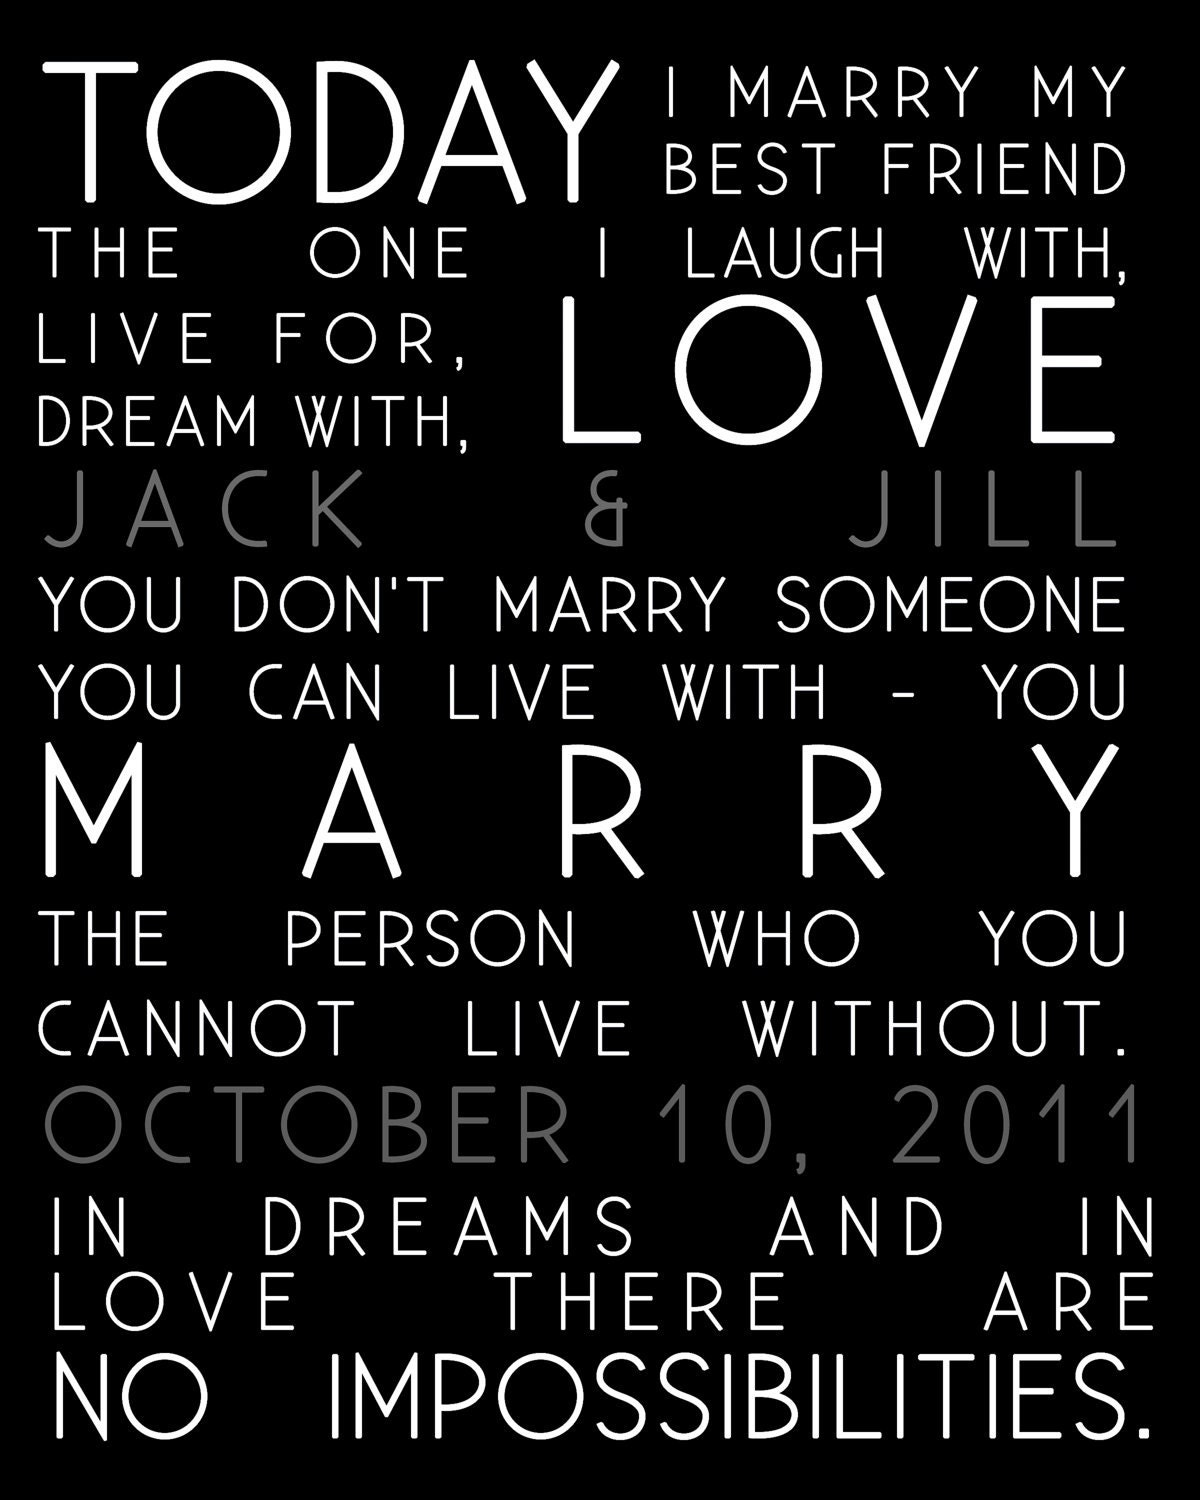 Best Friend Quotes For Couples : Today i marry quotes wedding print and names of couple gift